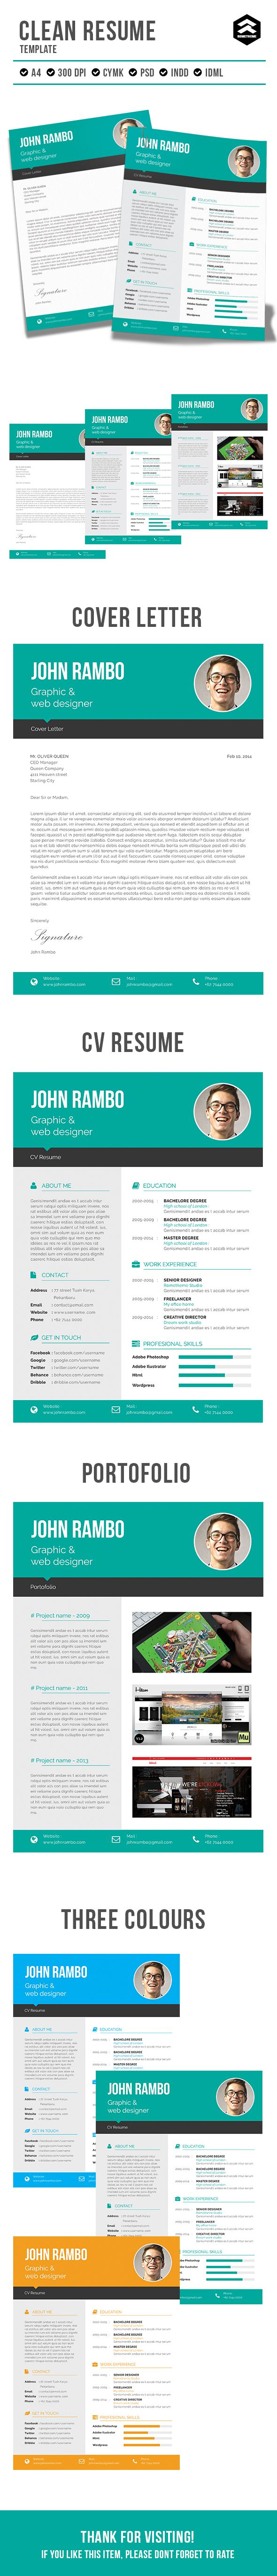 Clean CV resume by rometheme